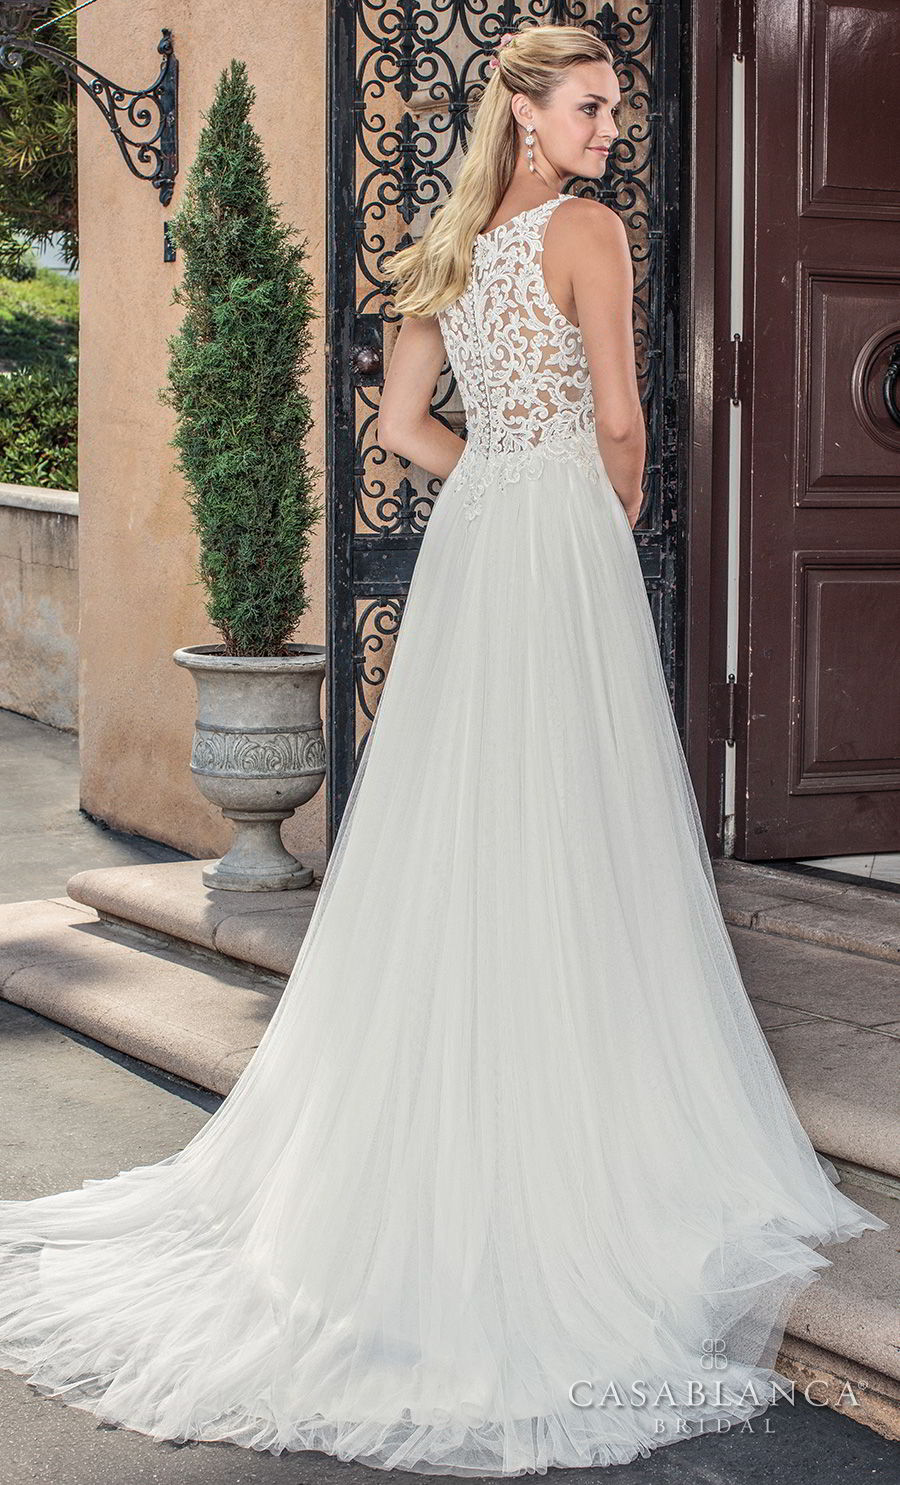 casablanca spring 2018 sleeveless bateau neck heavily embellished bodice romantic soft a line wedding dress covered lace back medium train (della) bv